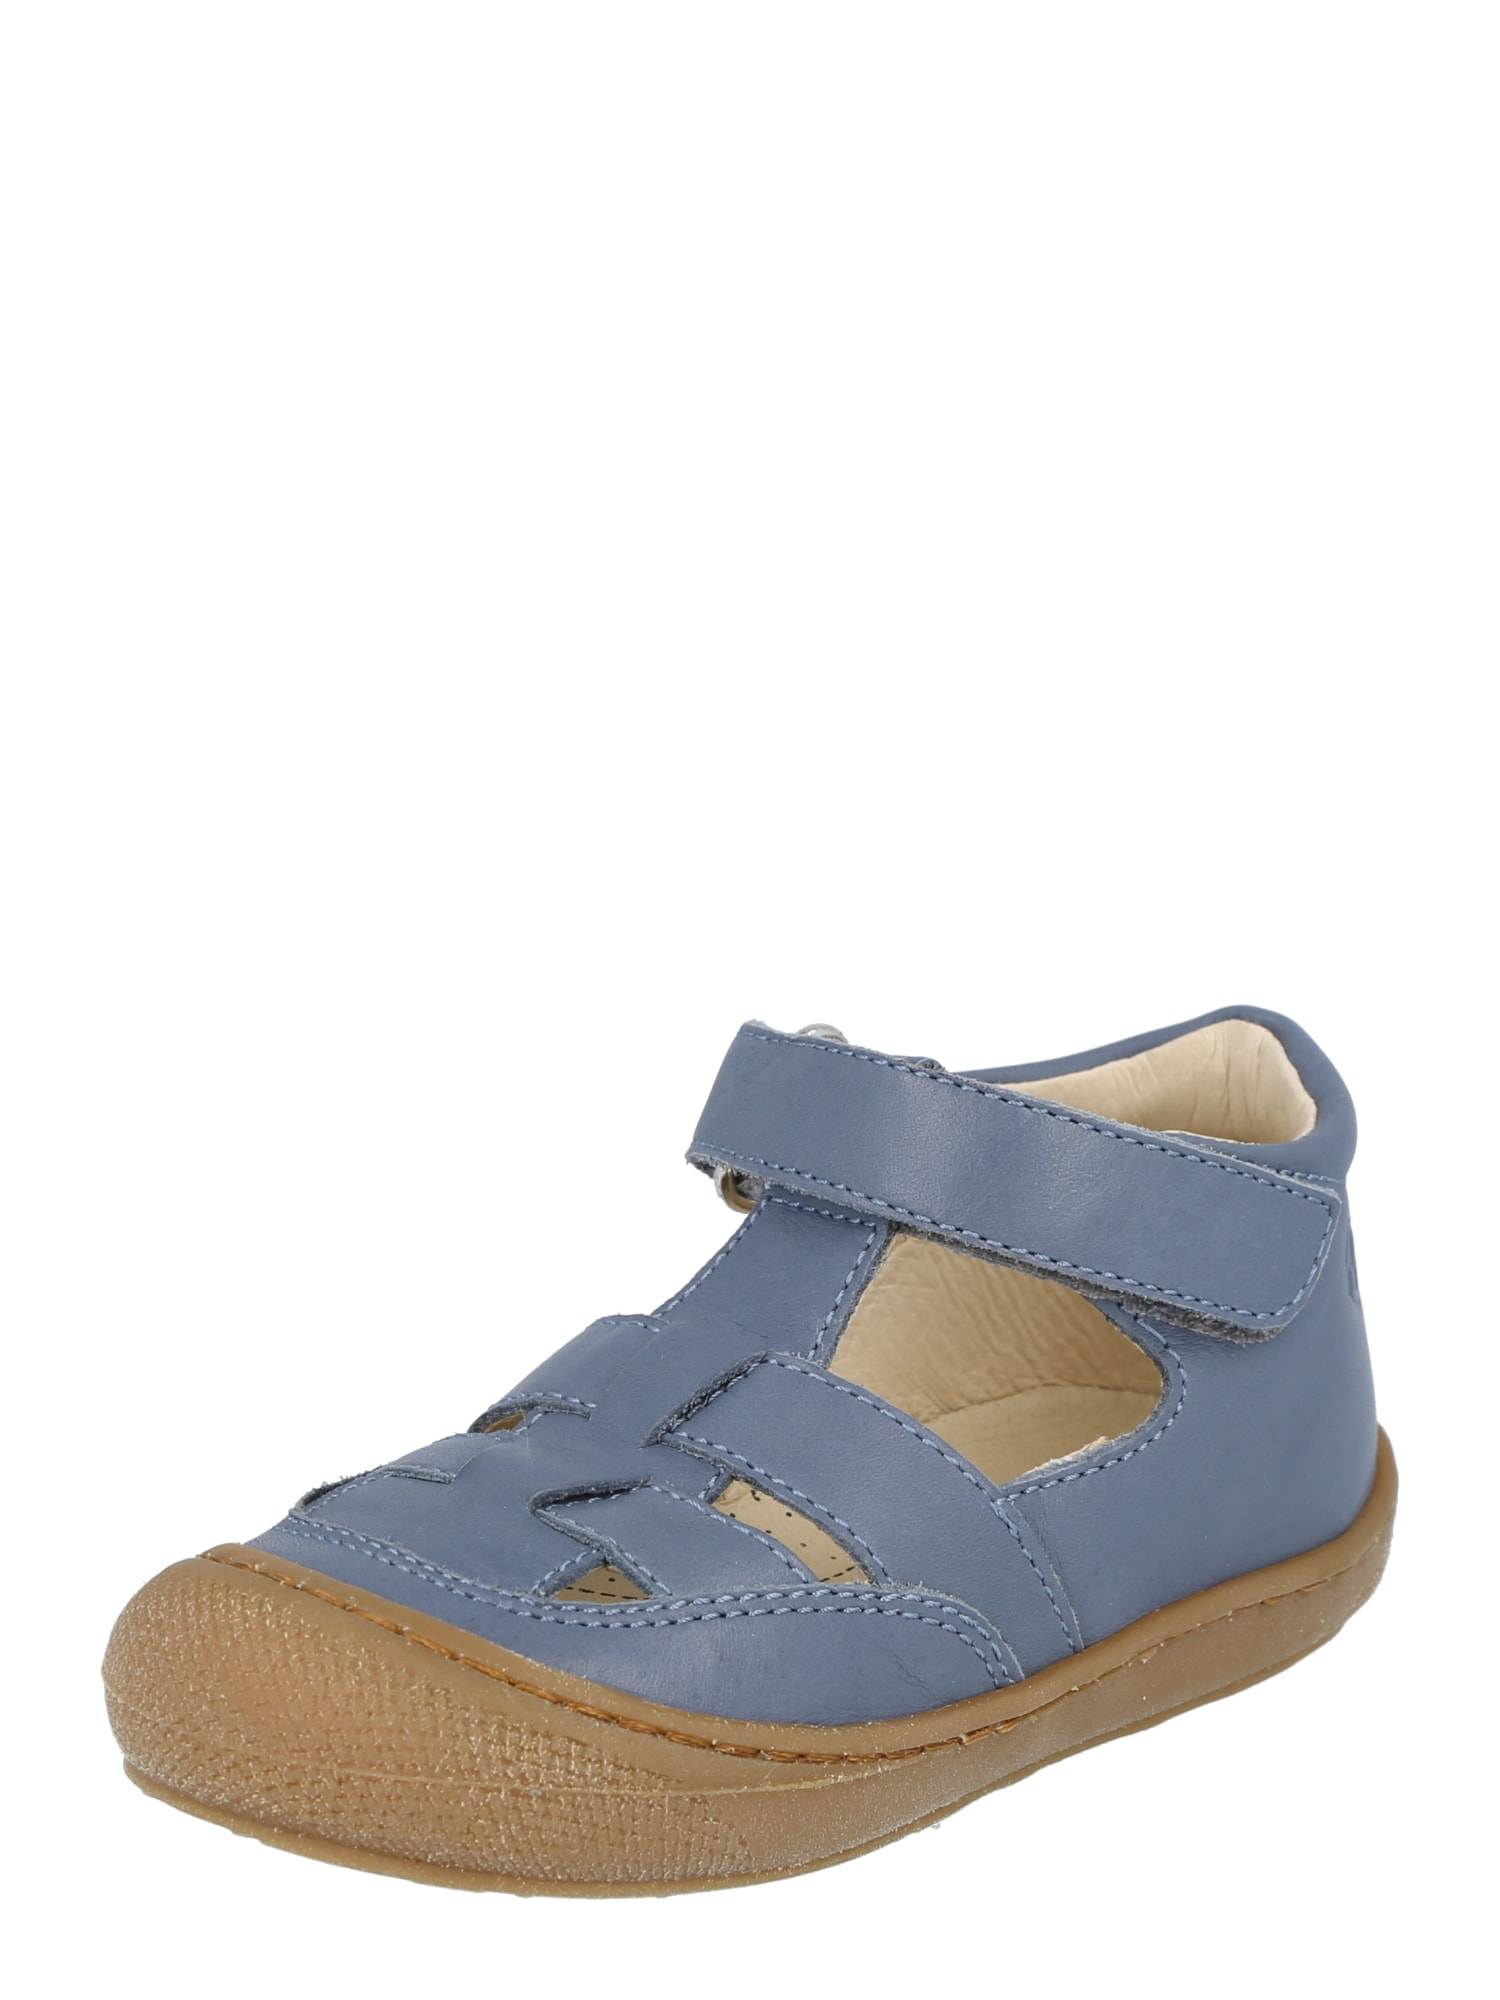 NATURINO Chaussures ouvertes 'Wad'  - Bleu - Taille: 20 - boy